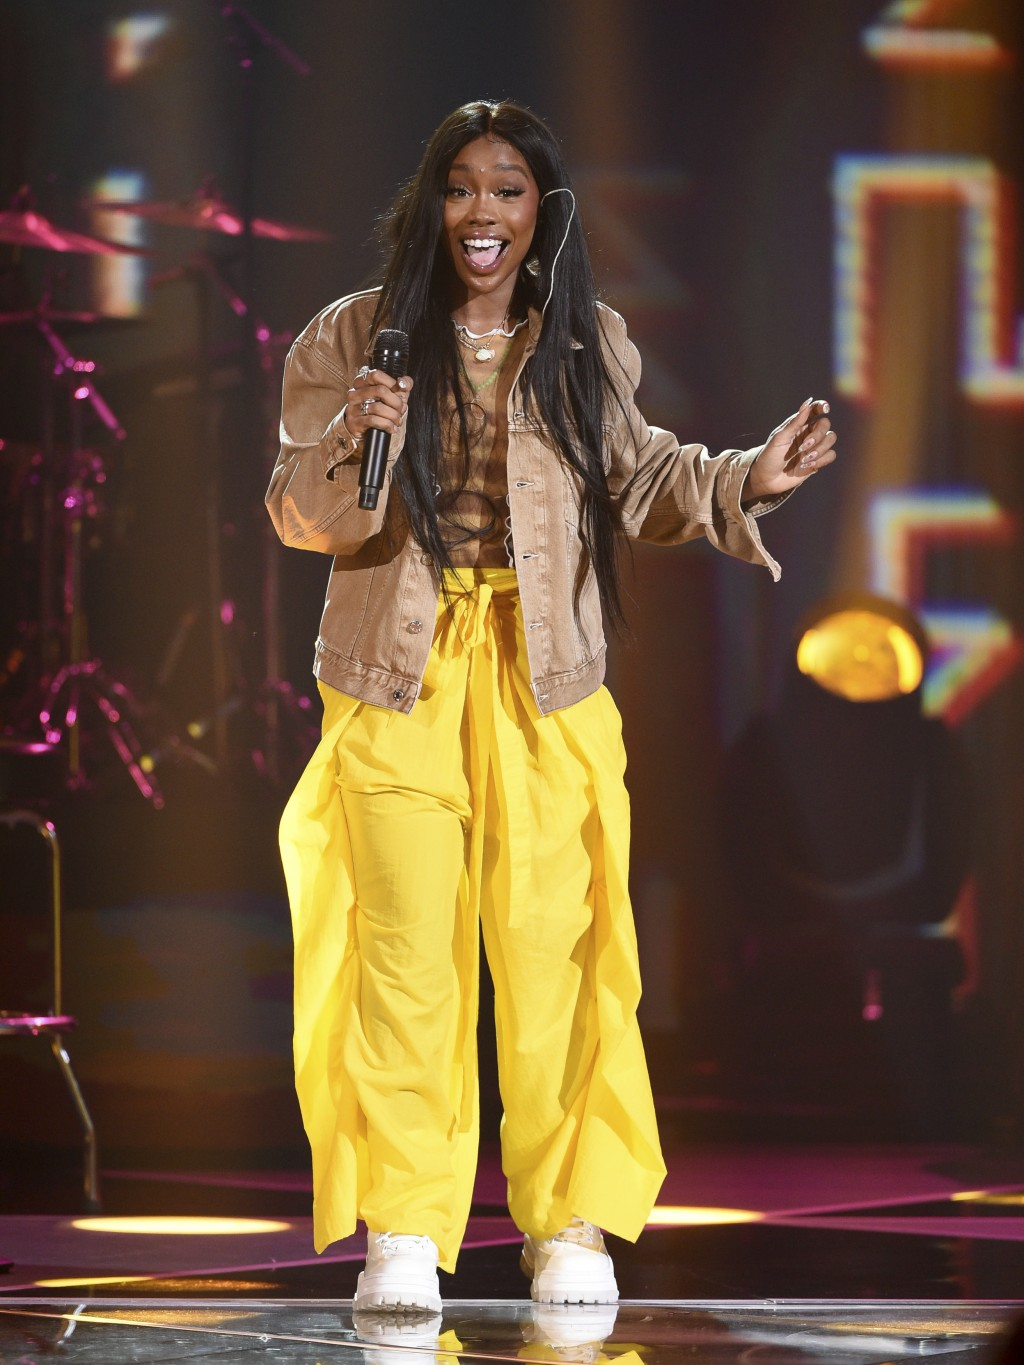 Singer SZA performs at Amazon Music's Prime Day concert at the Hammerstein Ballroom on Wednesday, July 10, 2019, in New York. (Photo by Evan Agostini/...